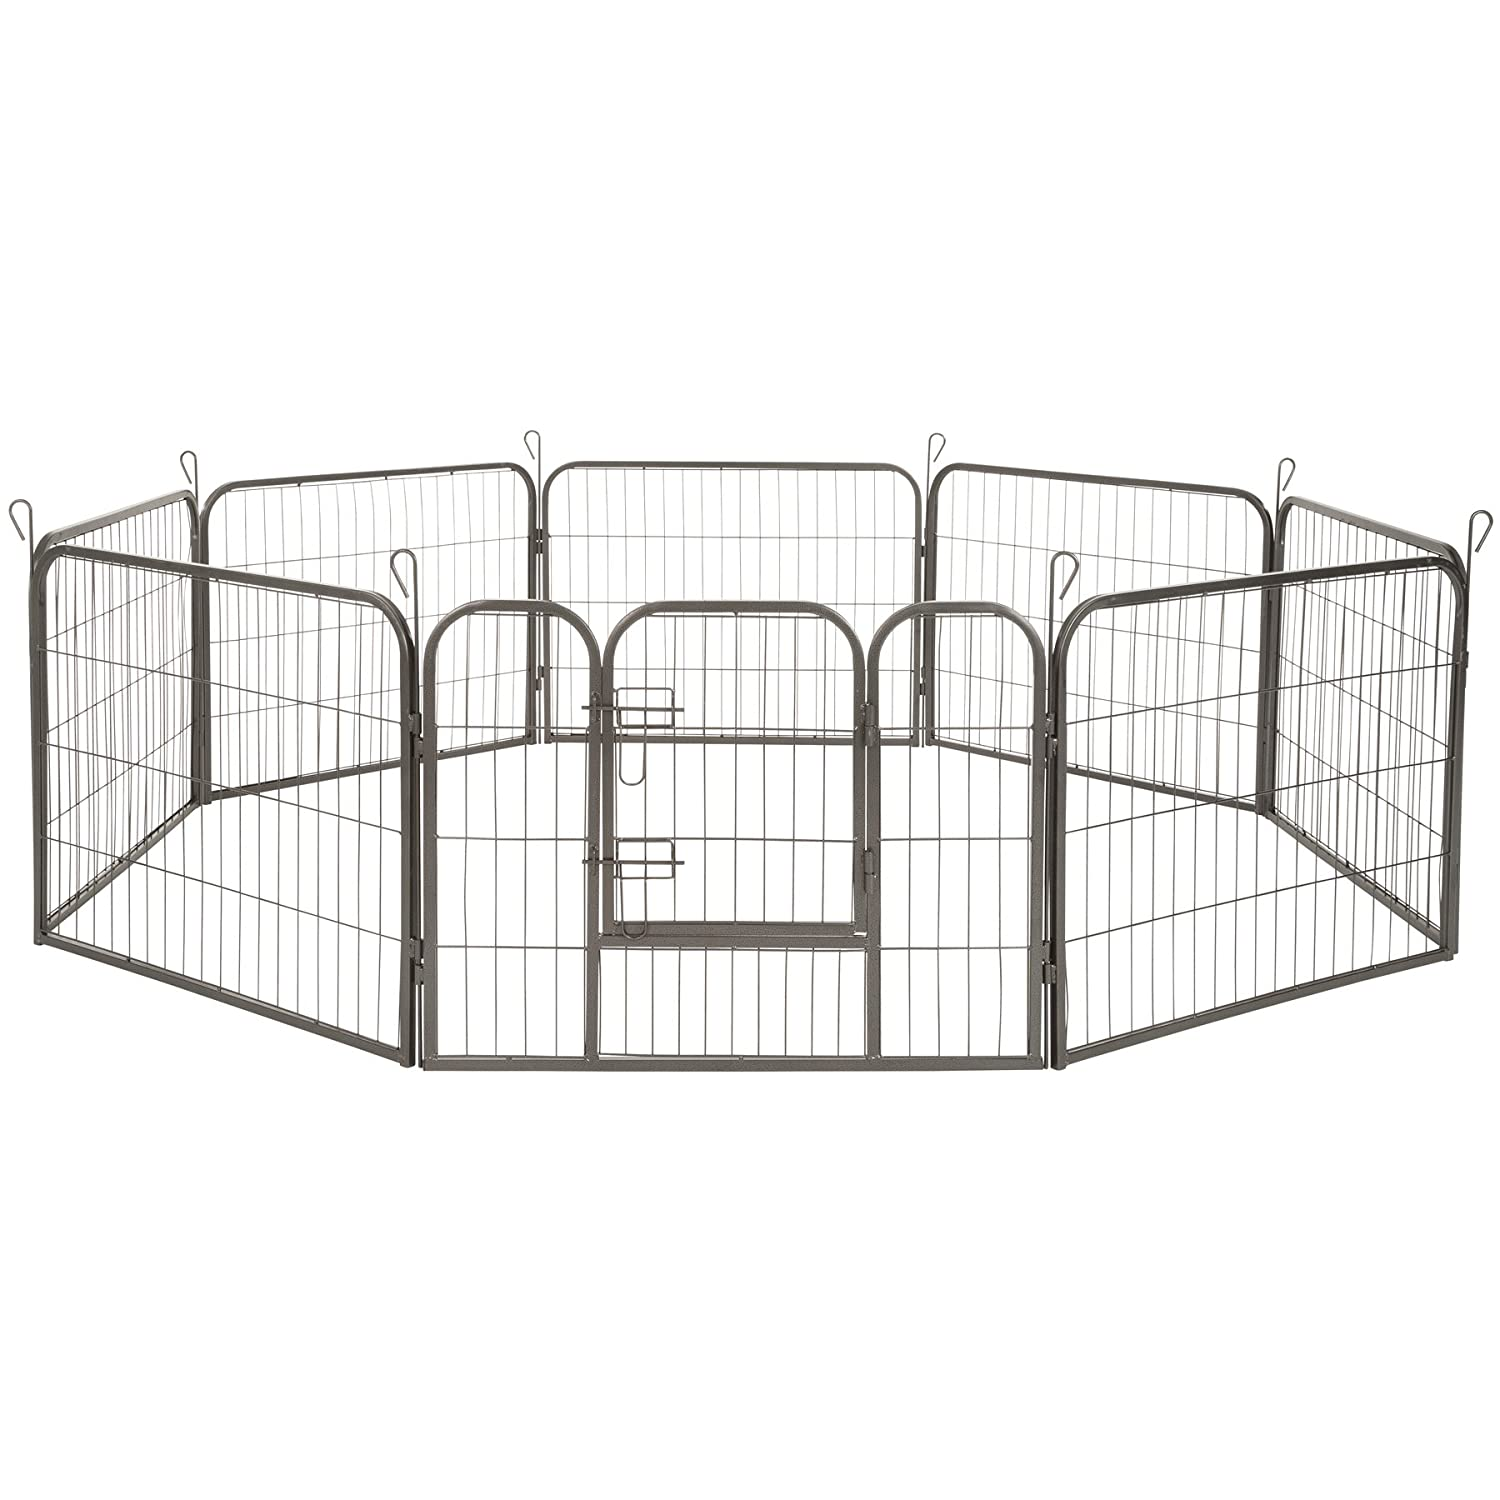 Hauteur 60 Cm   No. 402502 TecTake Large animal puppy enclosure playpen fence free running cage dog rabbit different model (hauteur 60 cm   no. 402502)